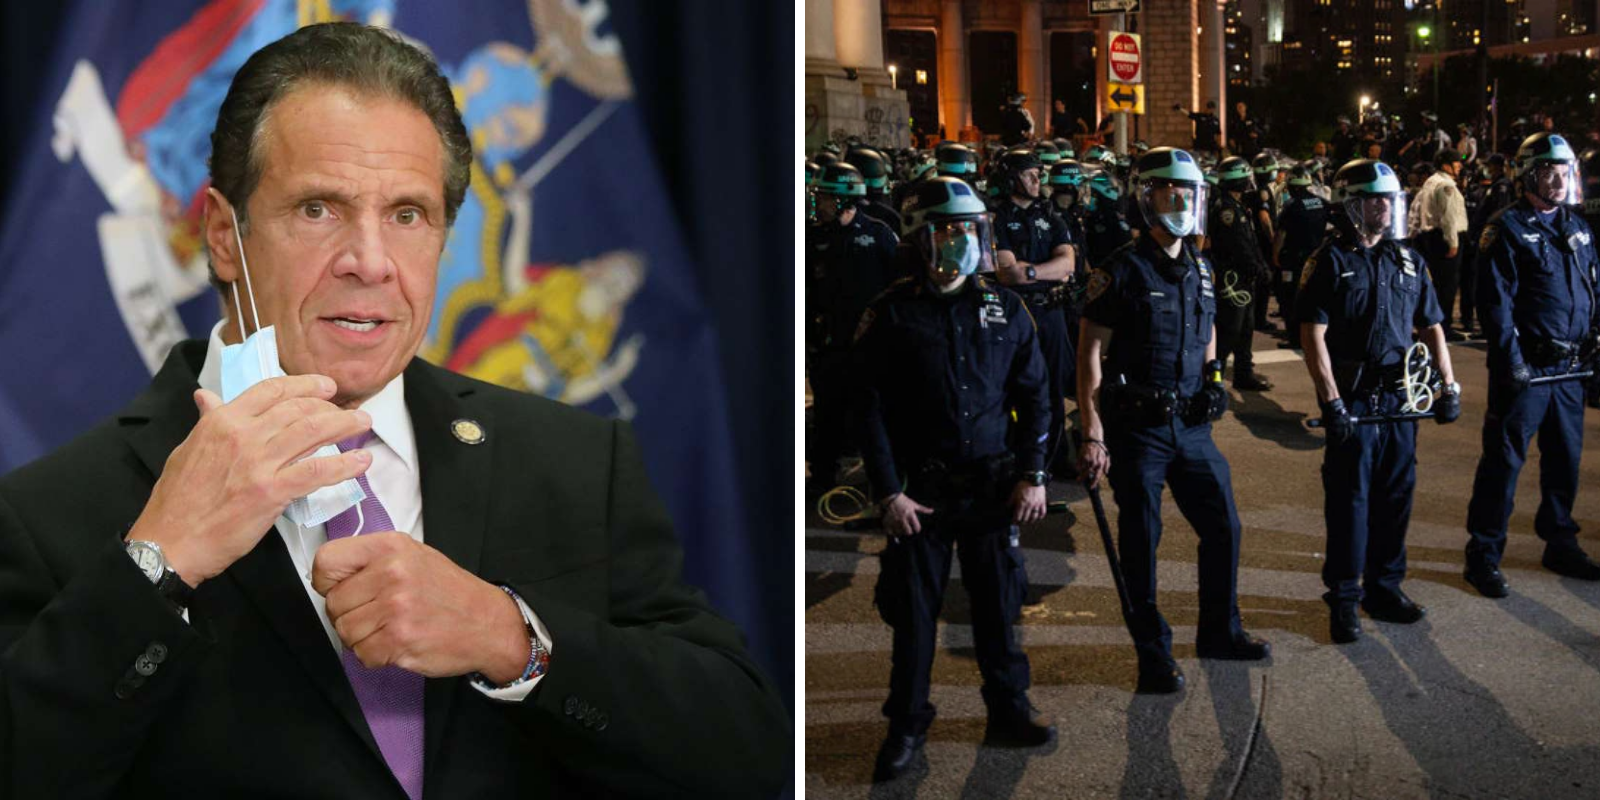 NYPD 'will not be enforcing' Cuomo's anti-Thanksgiving orders